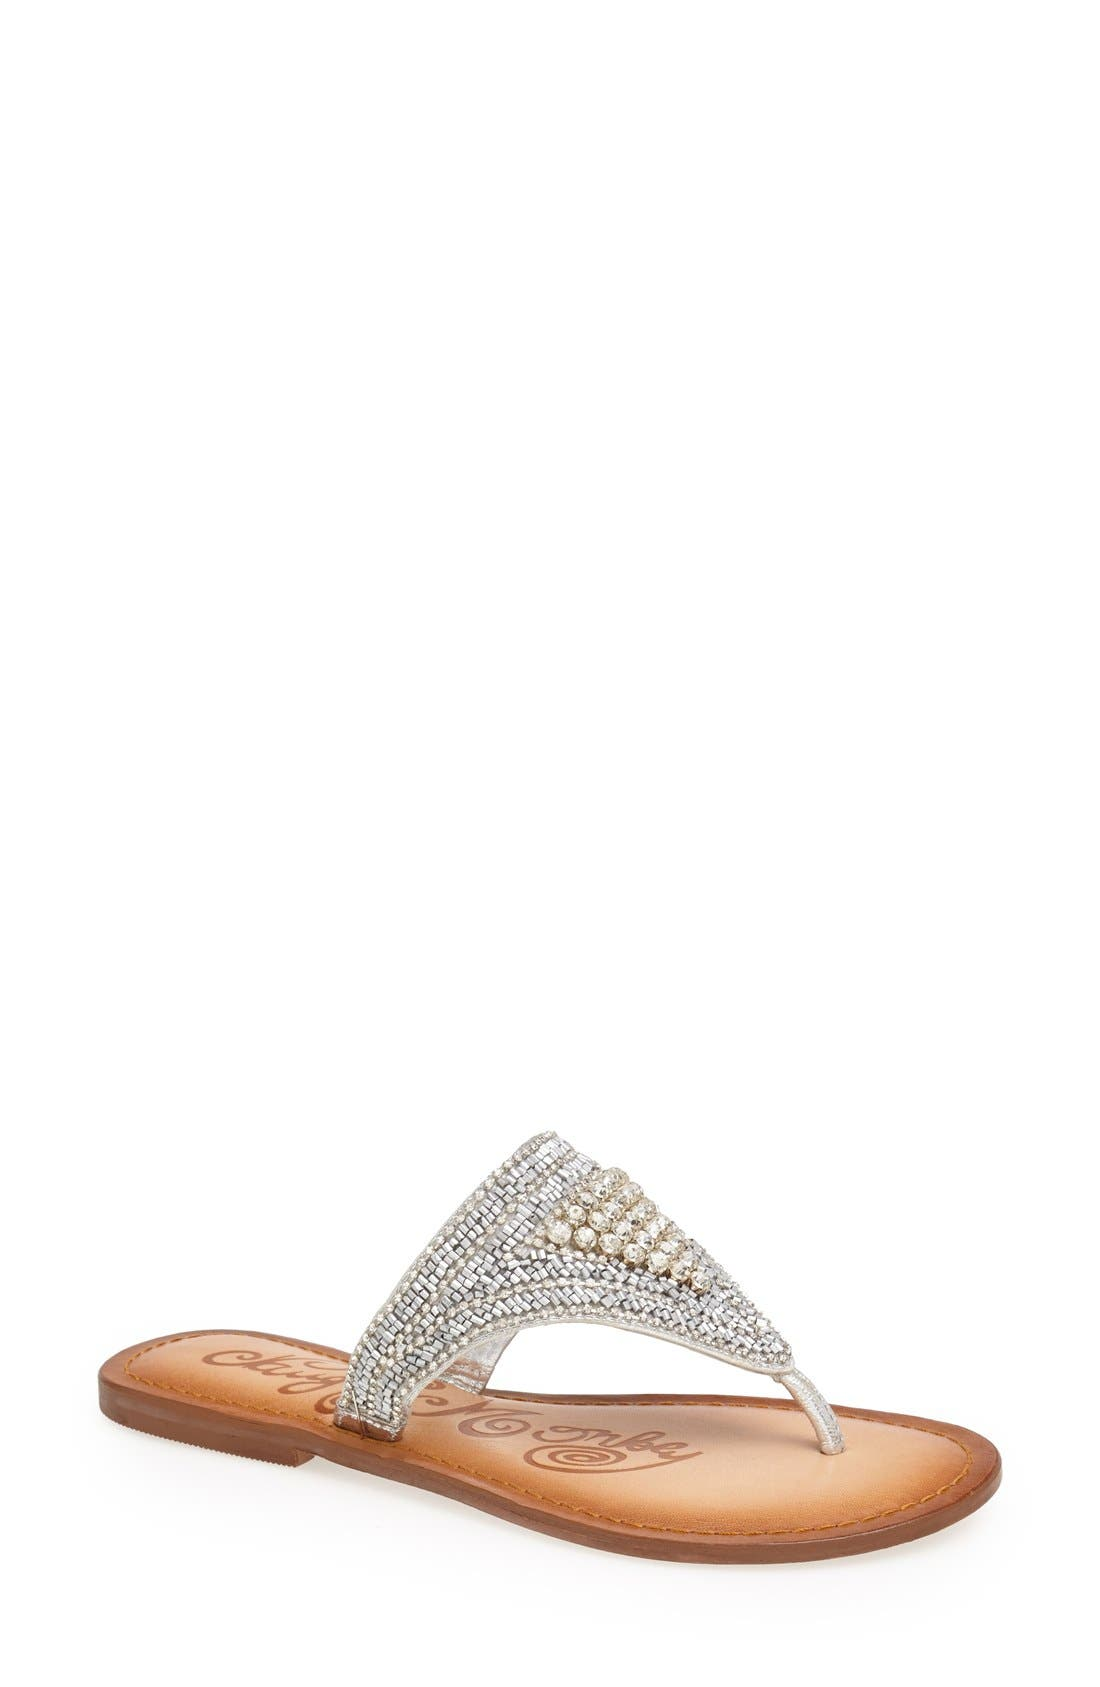 Alternate Image 1 Selected - Naughty Monkey 'Gusto' Beaded Sandal (Women)